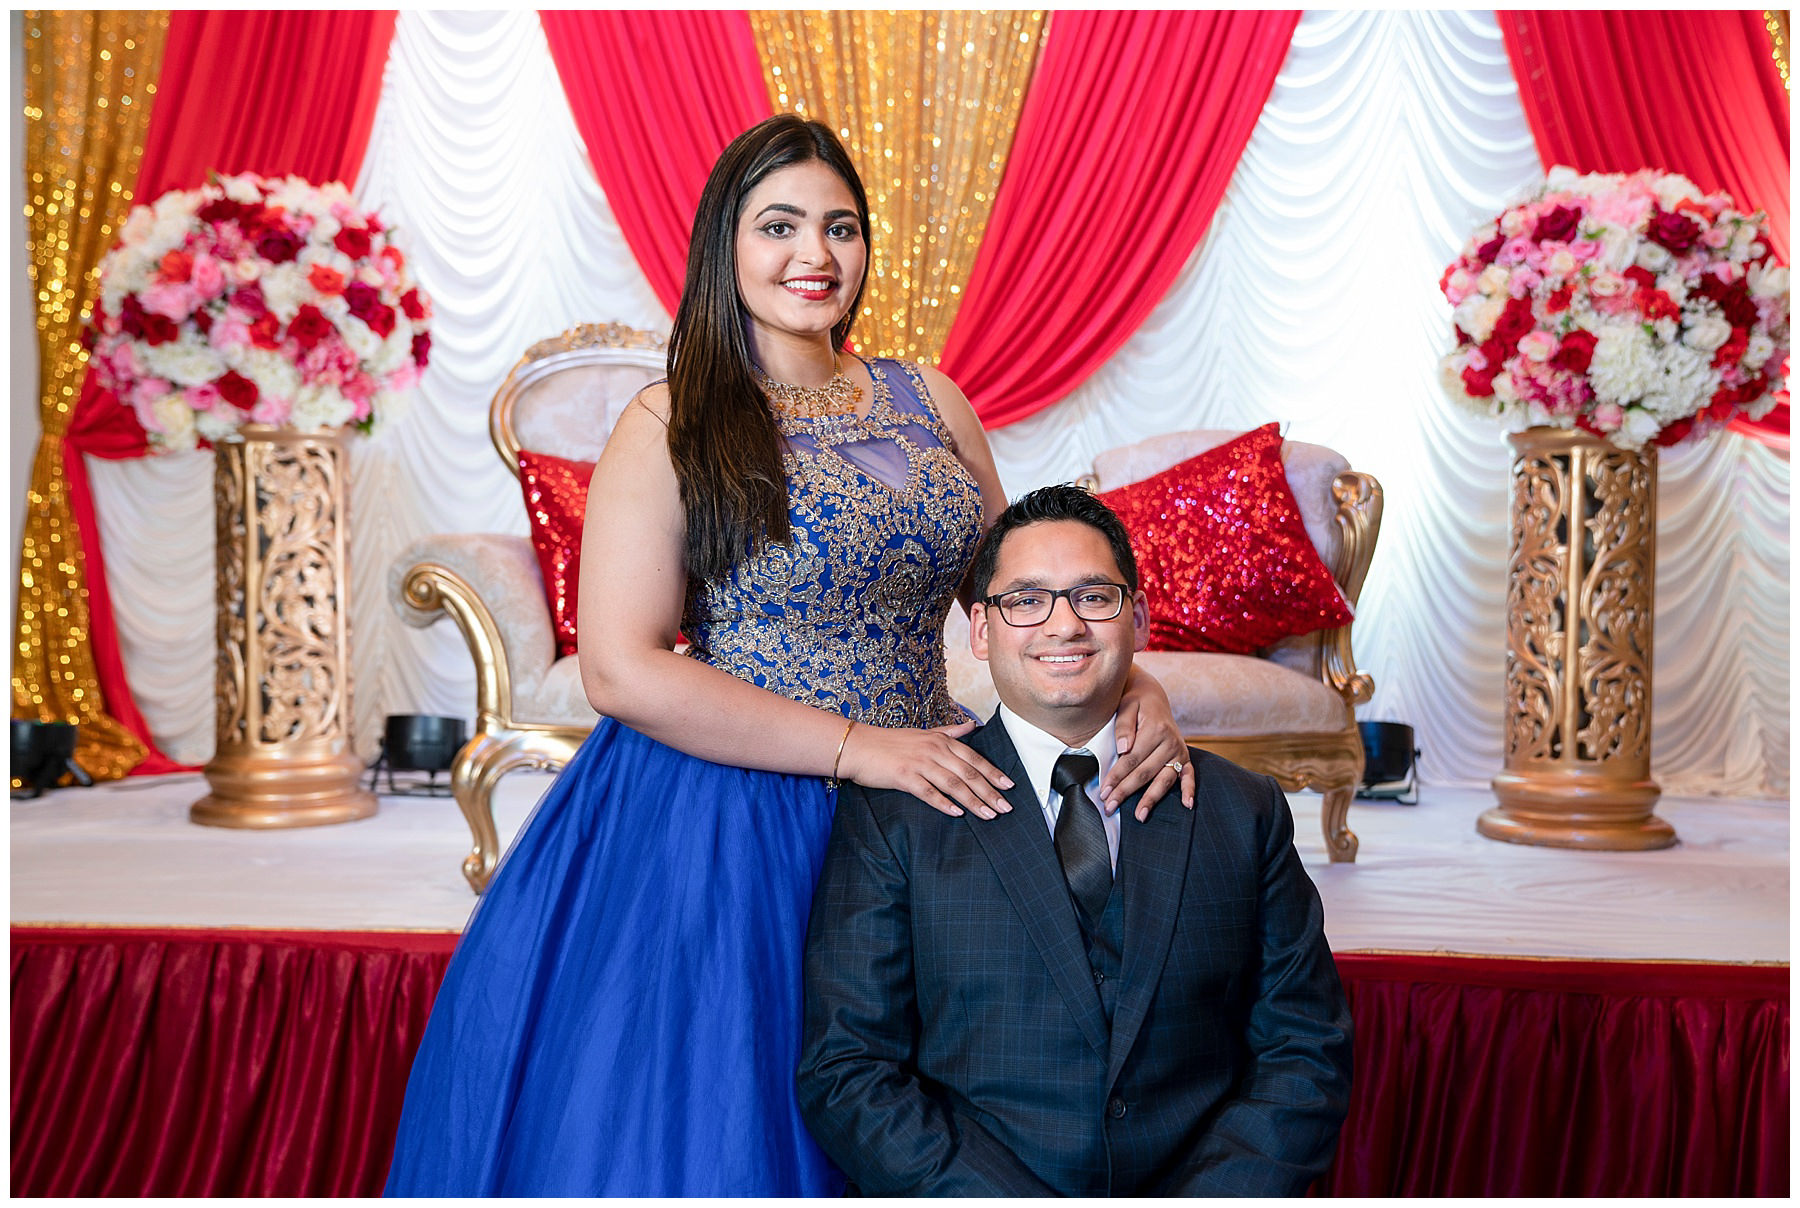 royal-alberts-palace-fords-nj-engagement-vidushi-ankush-2.jpg